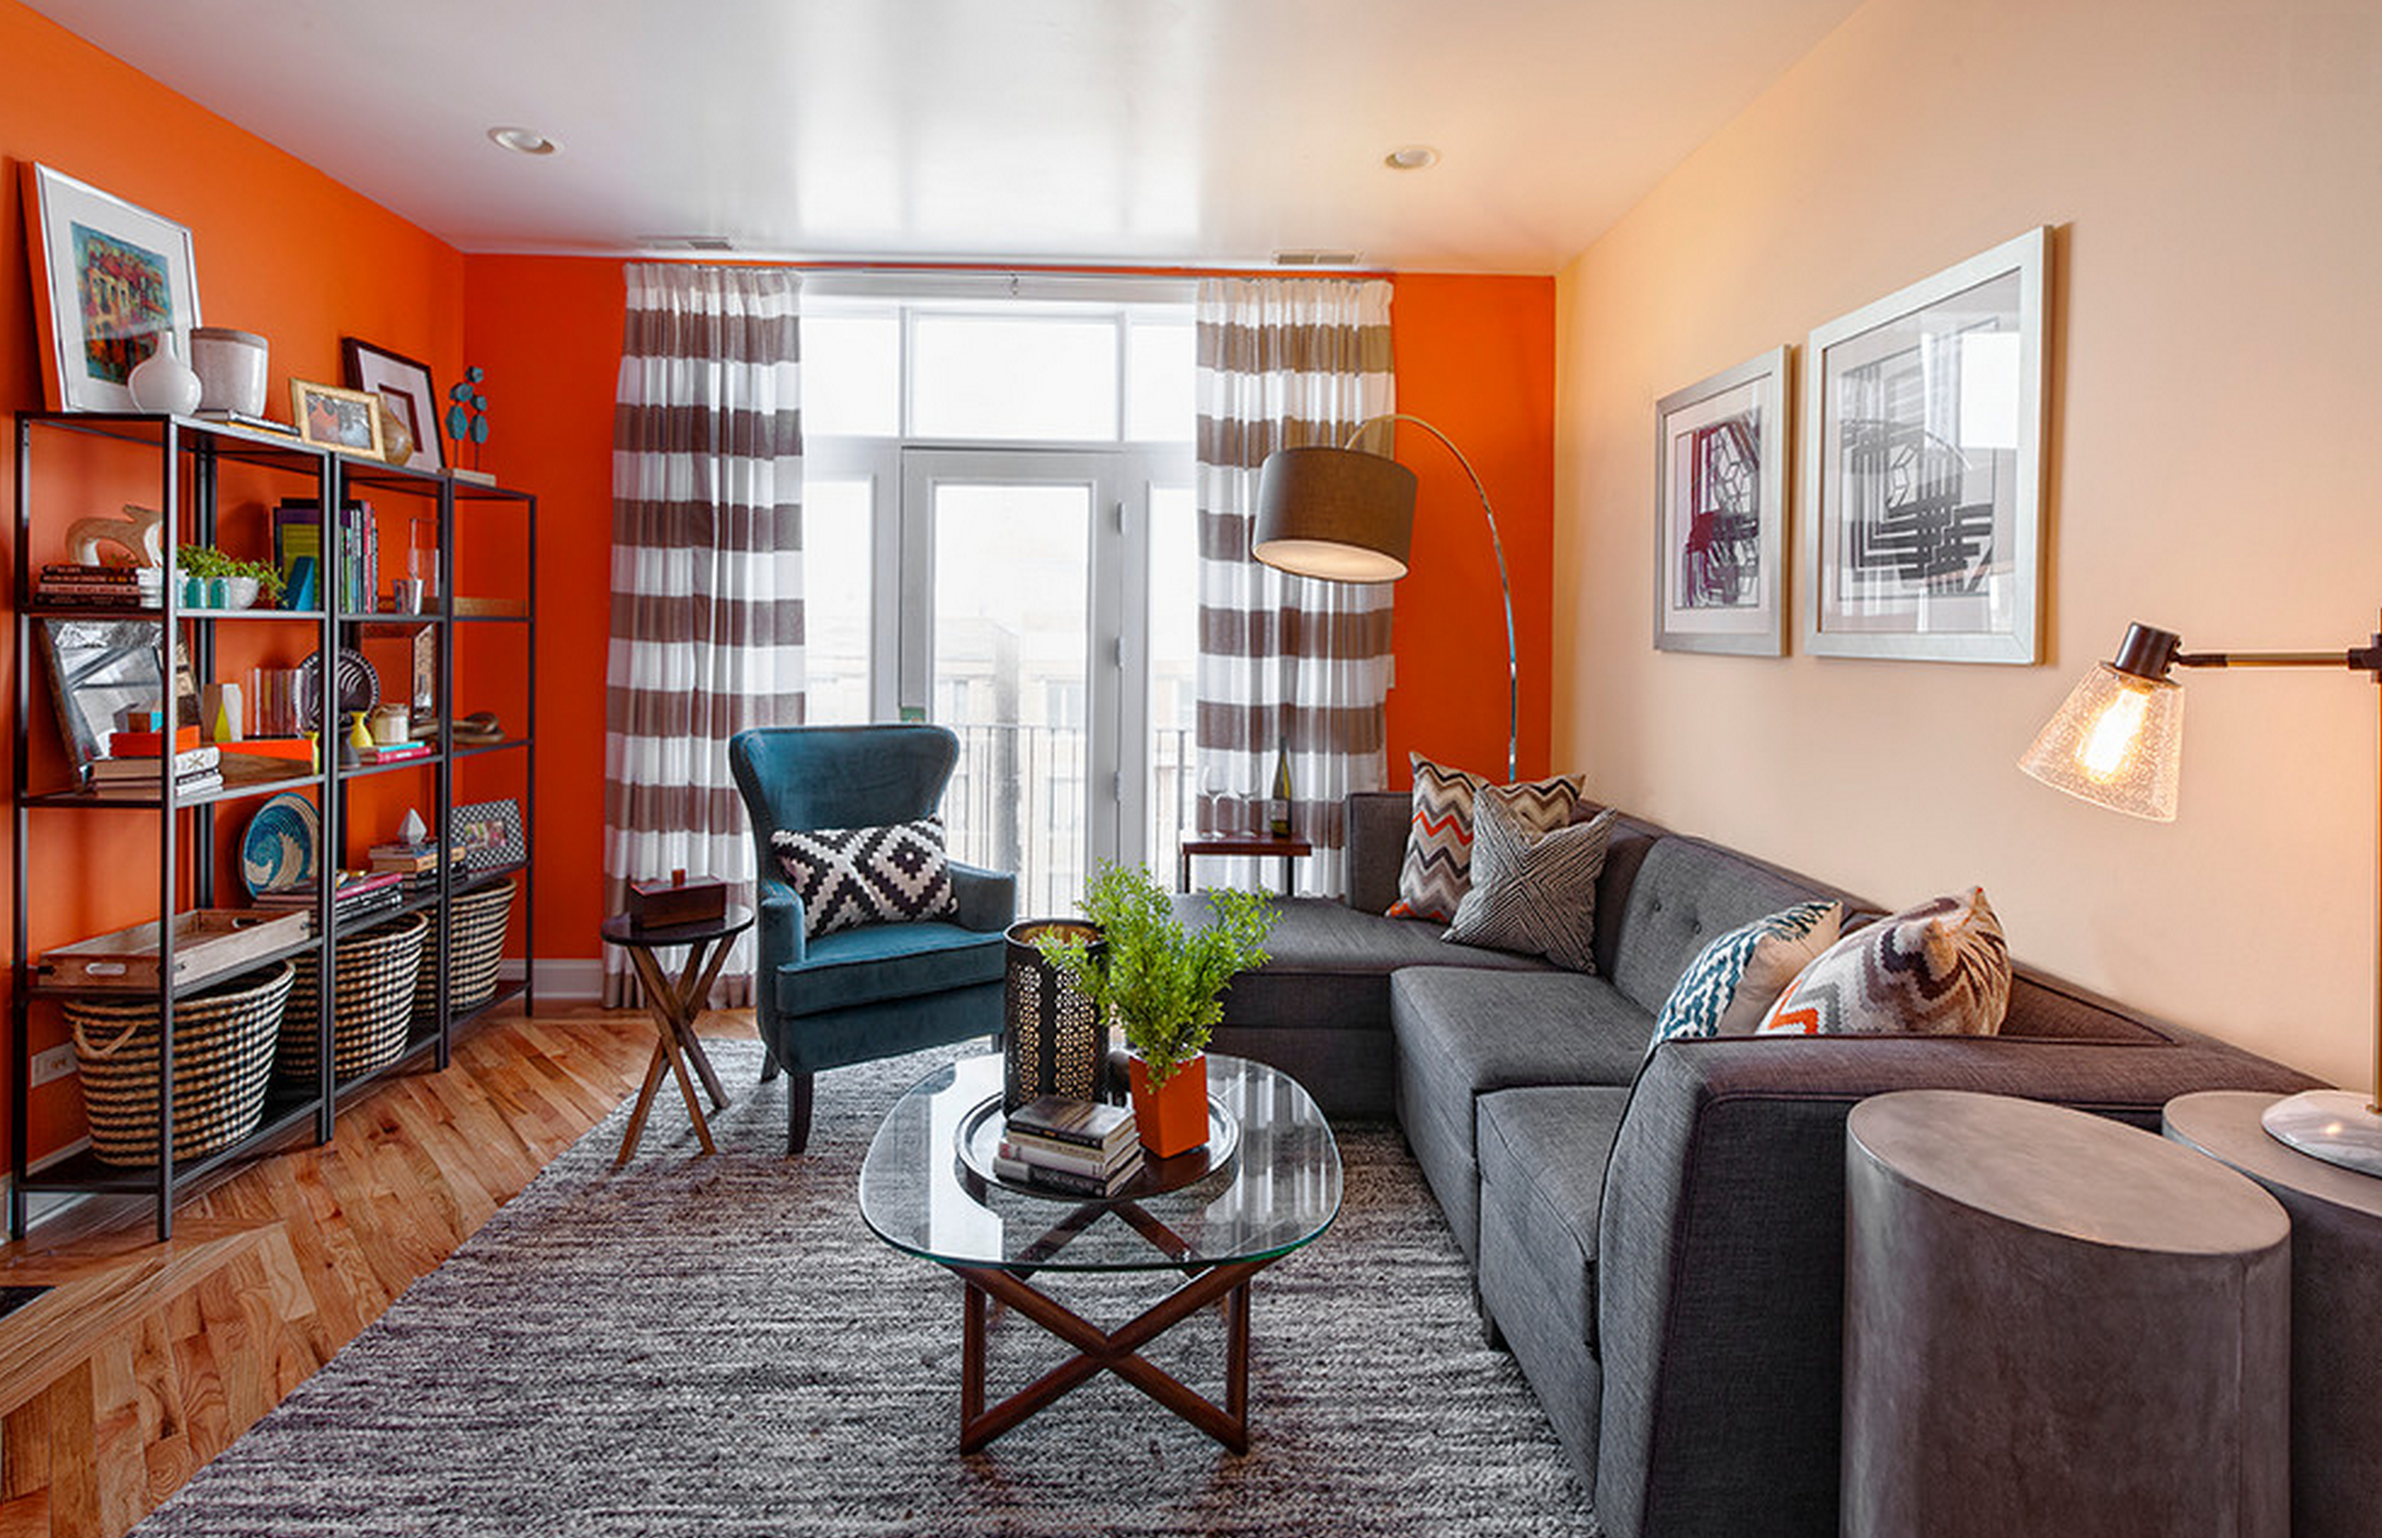 Living room design orange walls orange pillows teal orange gray walls burnt